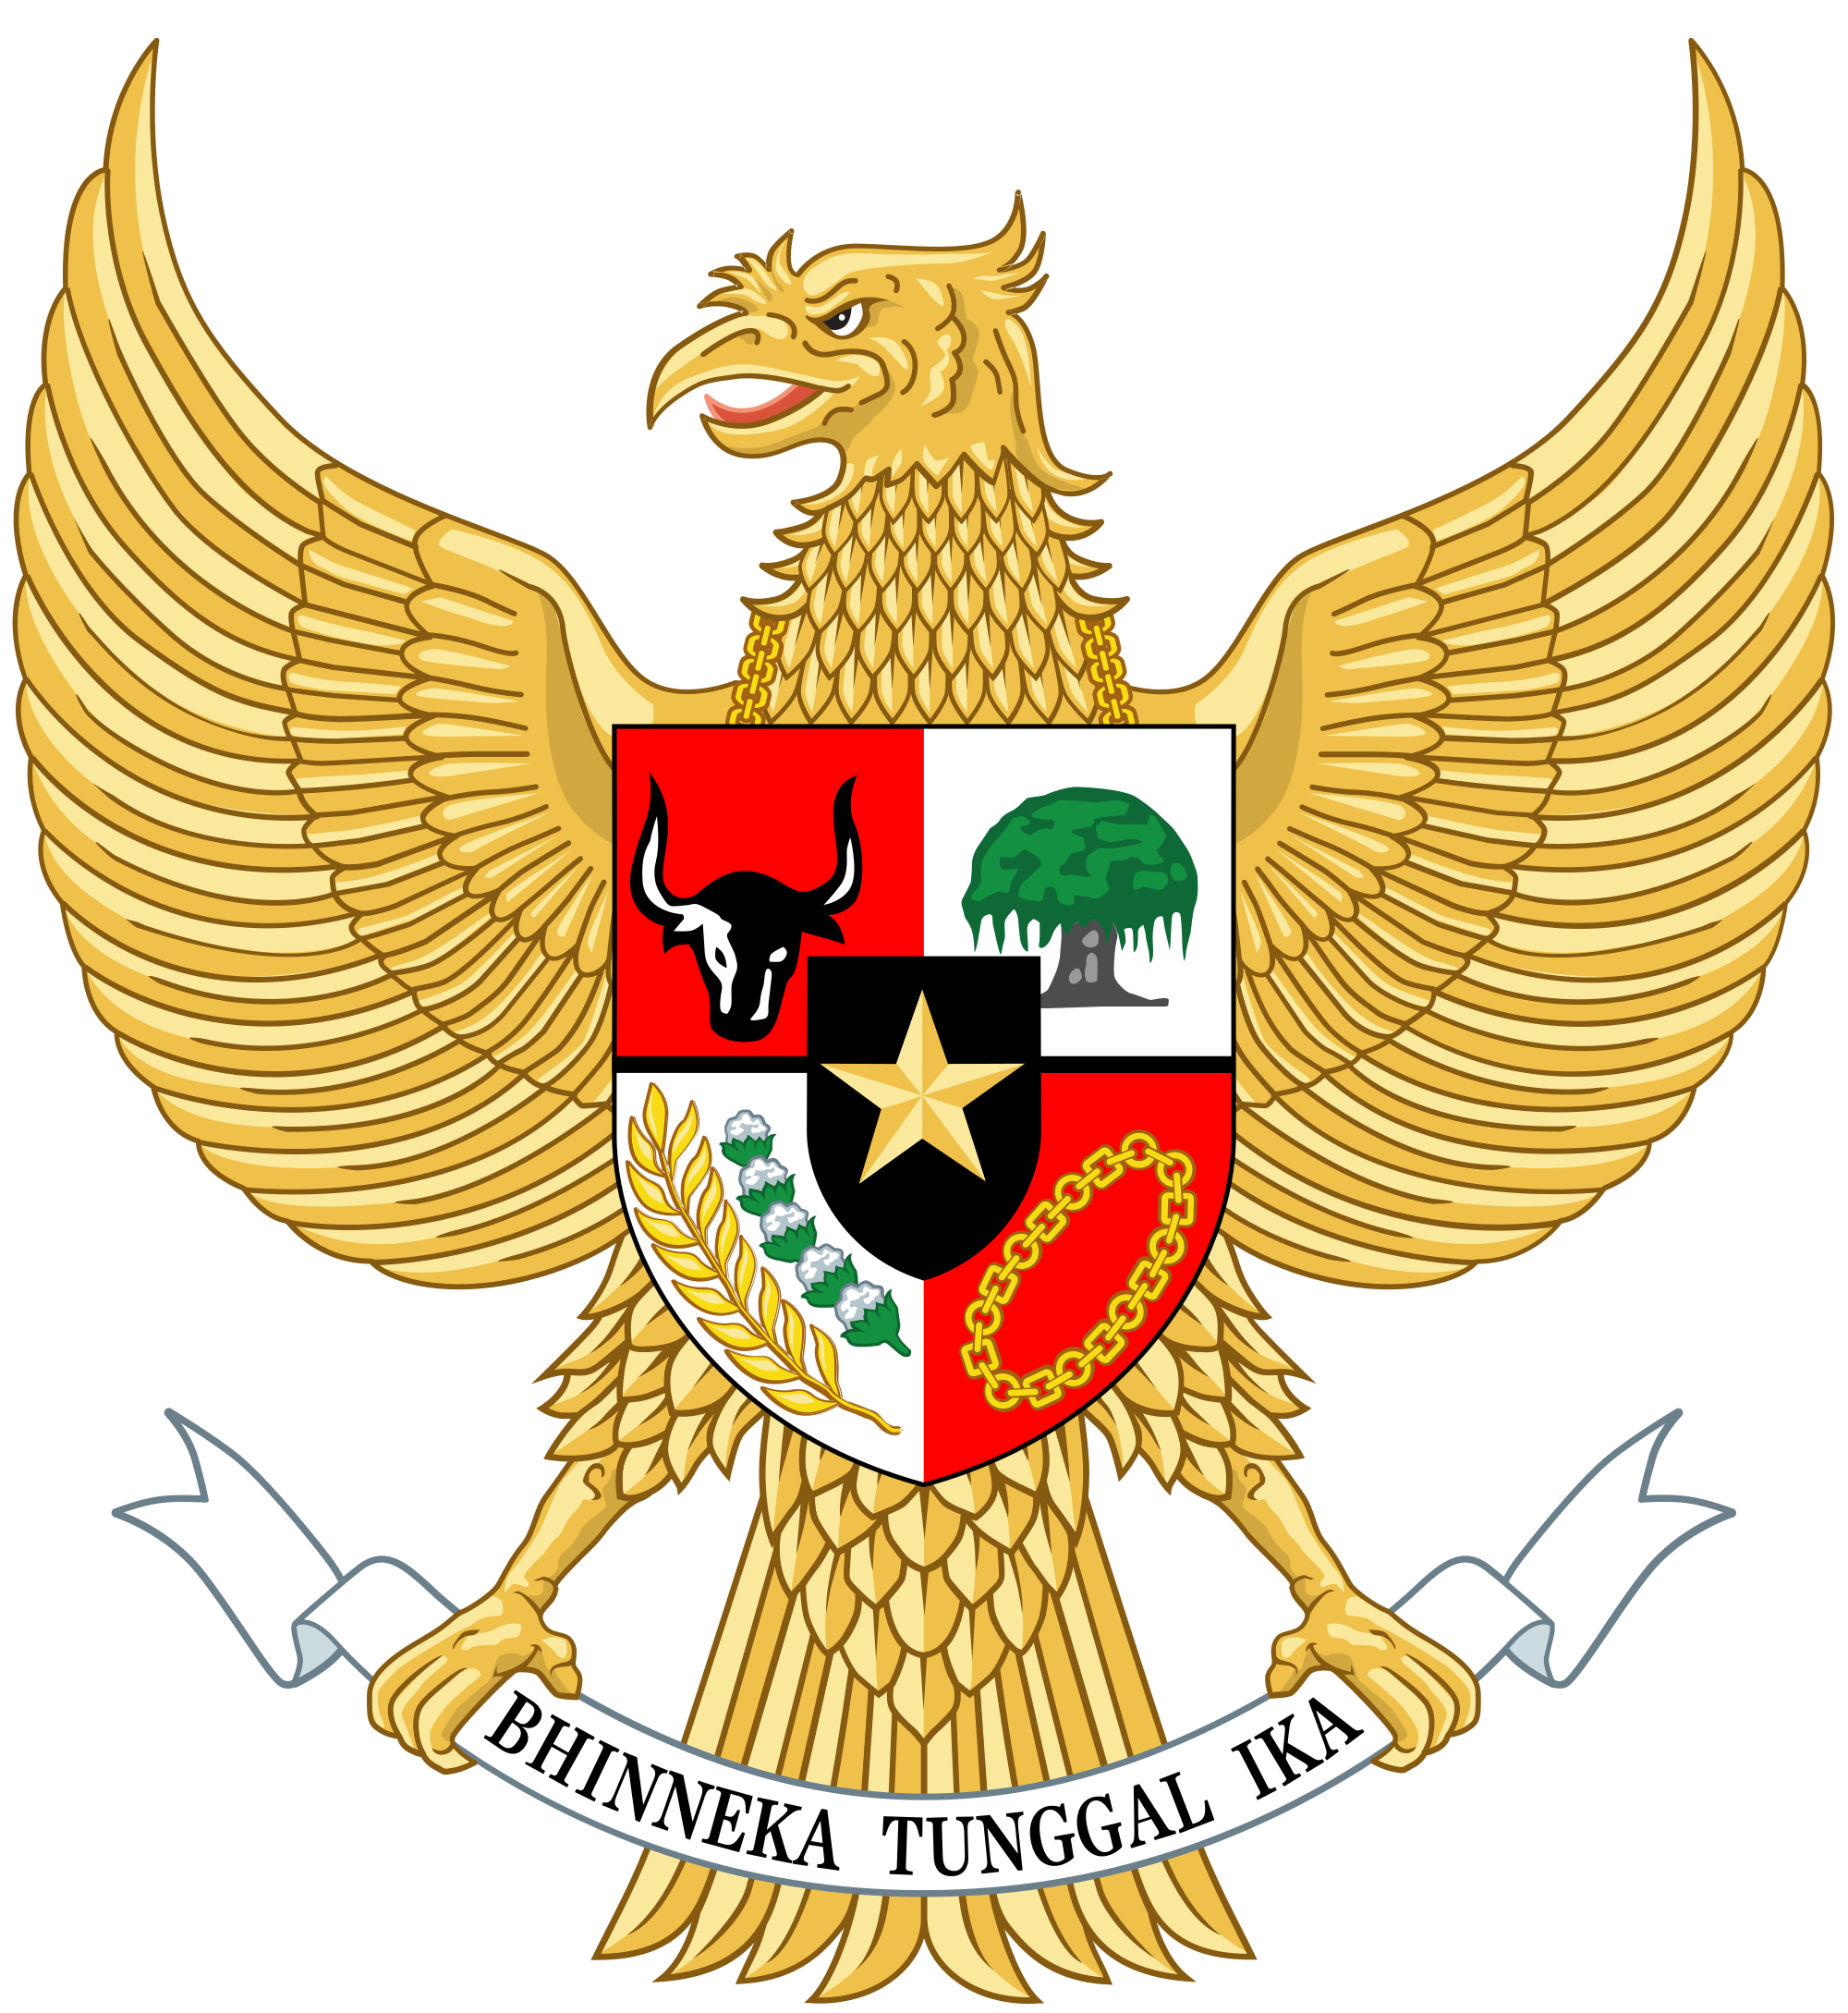 Garuda indonesia clipart svg transparent library National emblem of Indonesia - Wikipedia svg transparent library